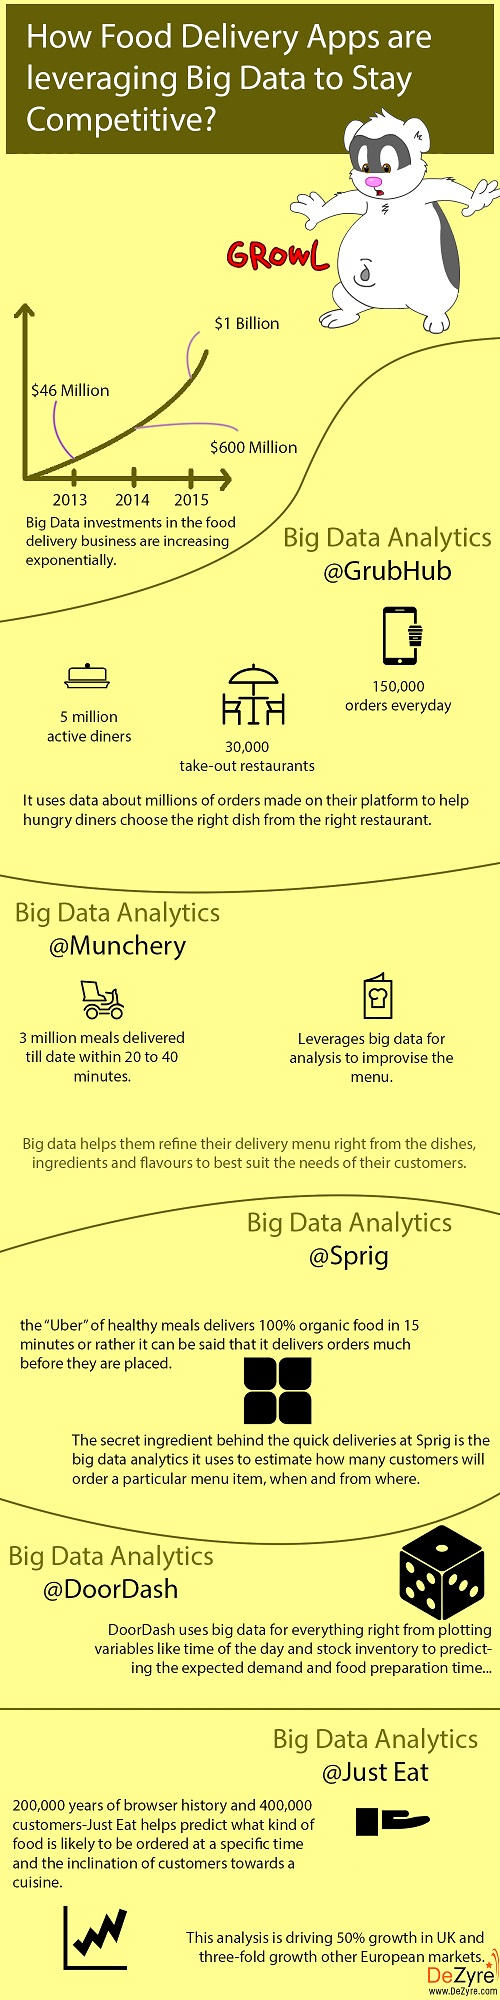 Big Data Food Industry Statistics